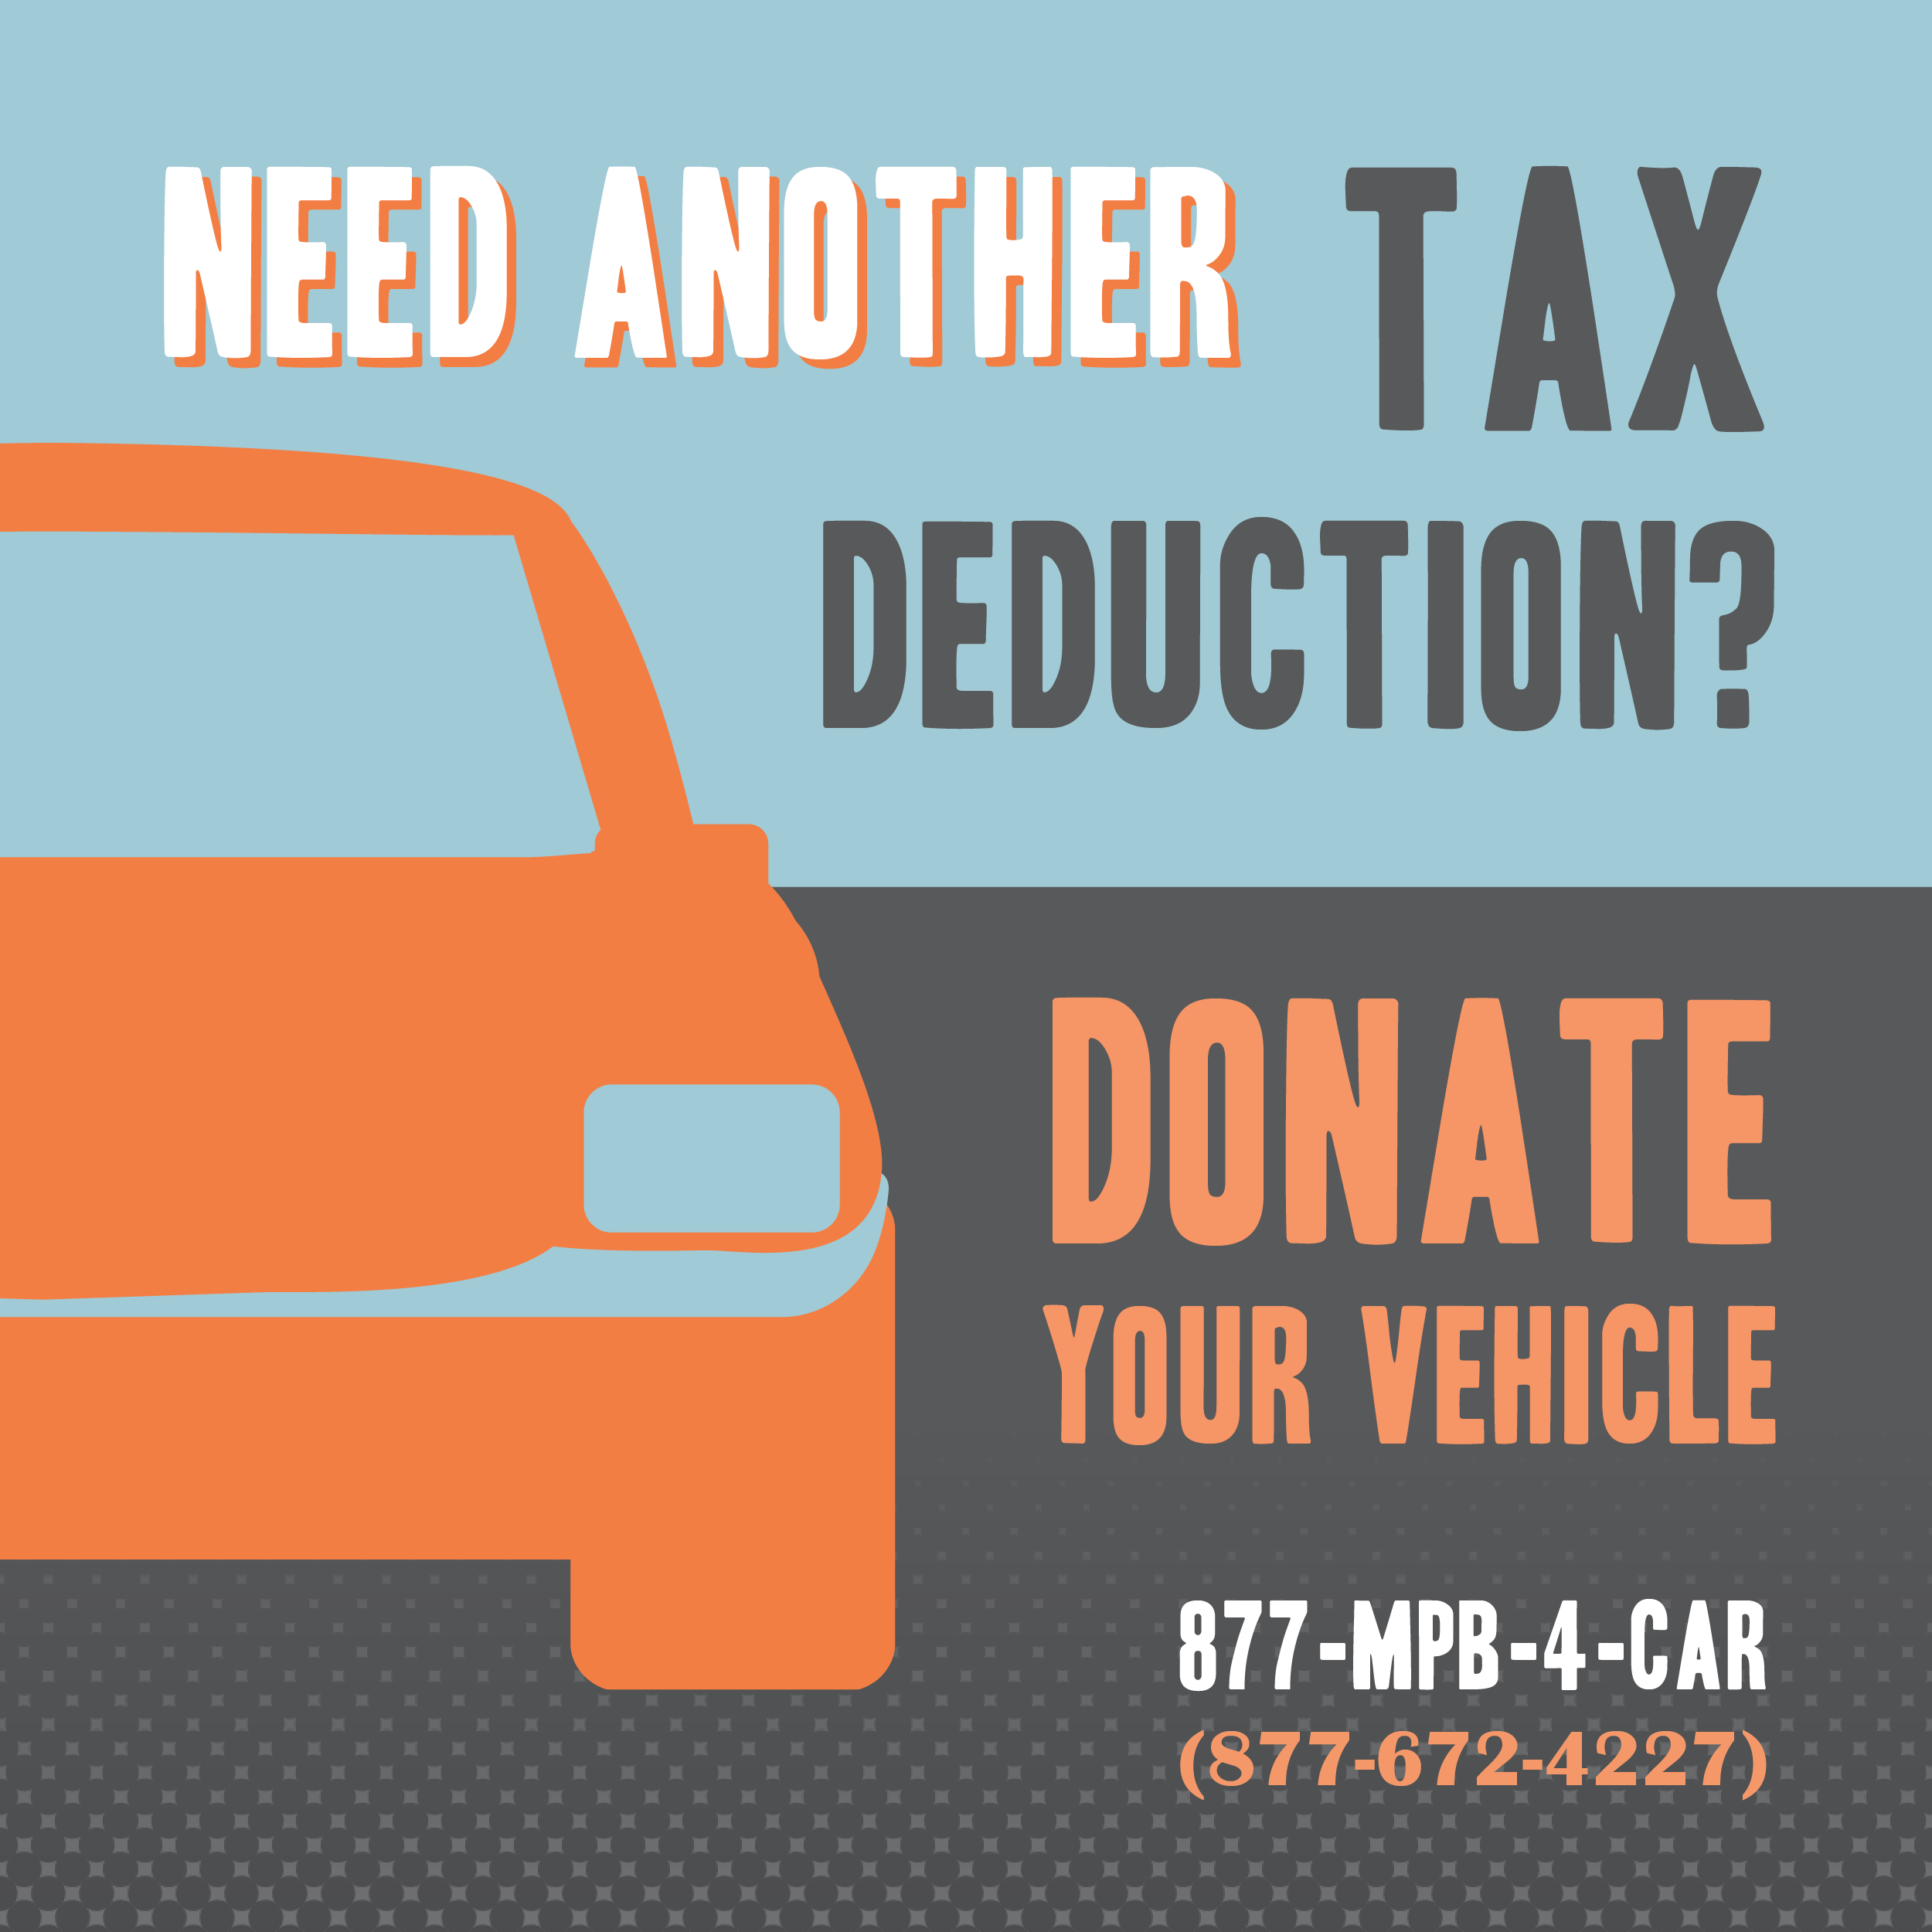 Donate your vehicle to MPB